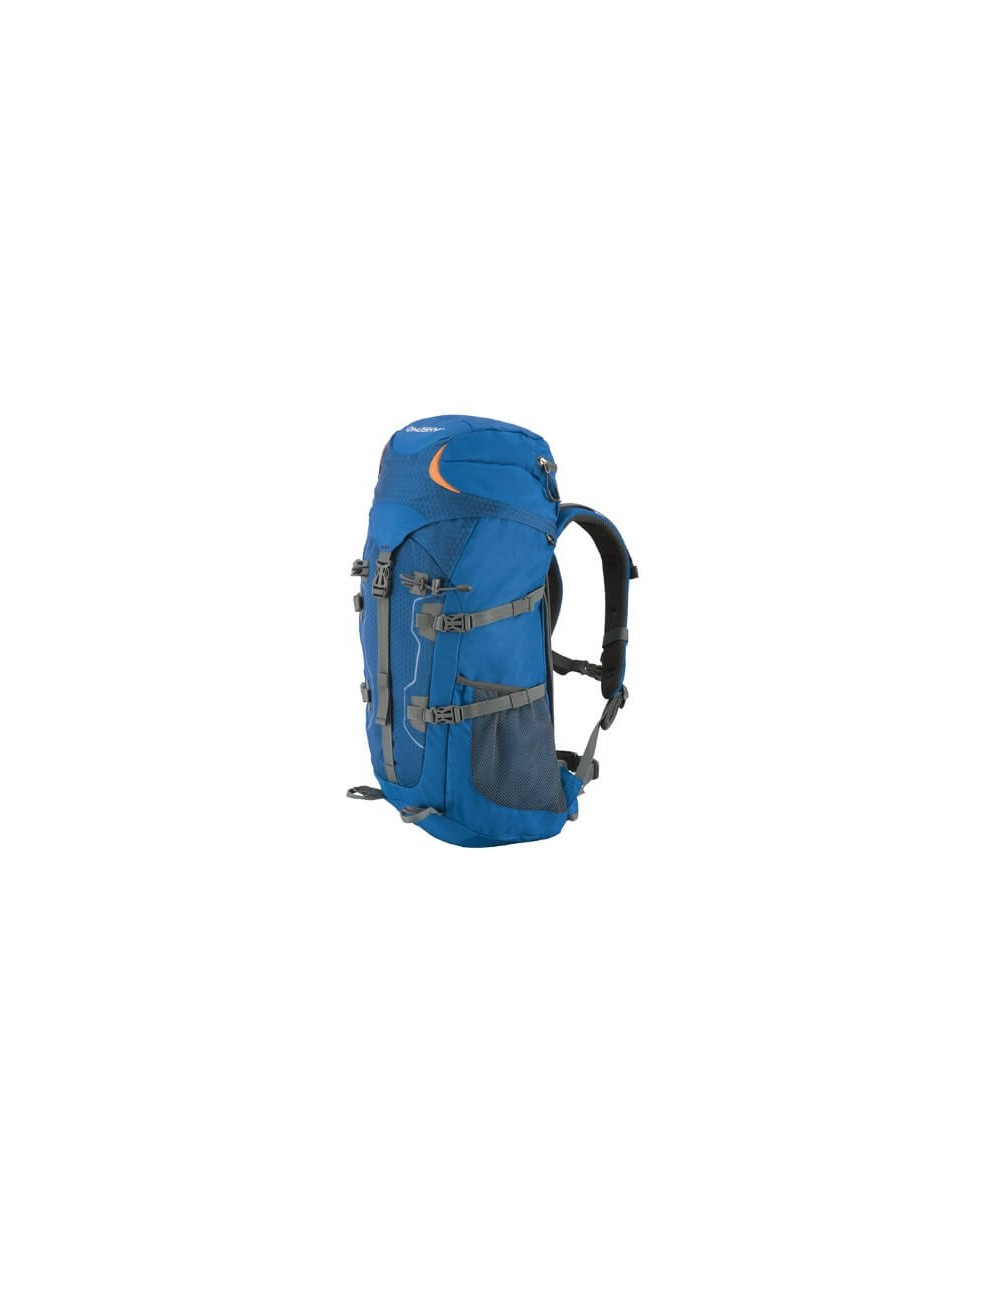 Husky Expedition Backpack – Scape - Blue